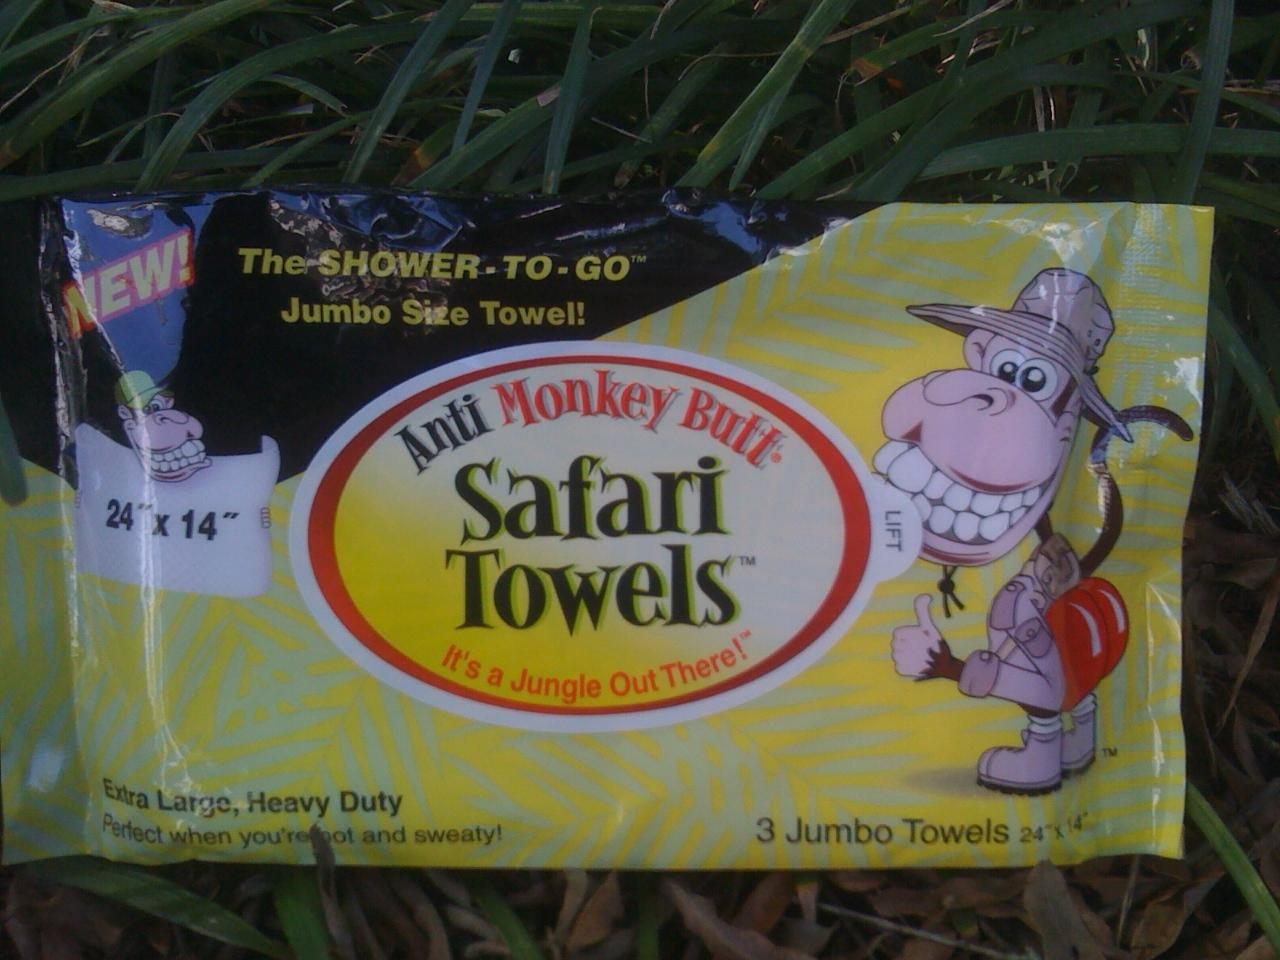 Anti-monkey-butt Towels